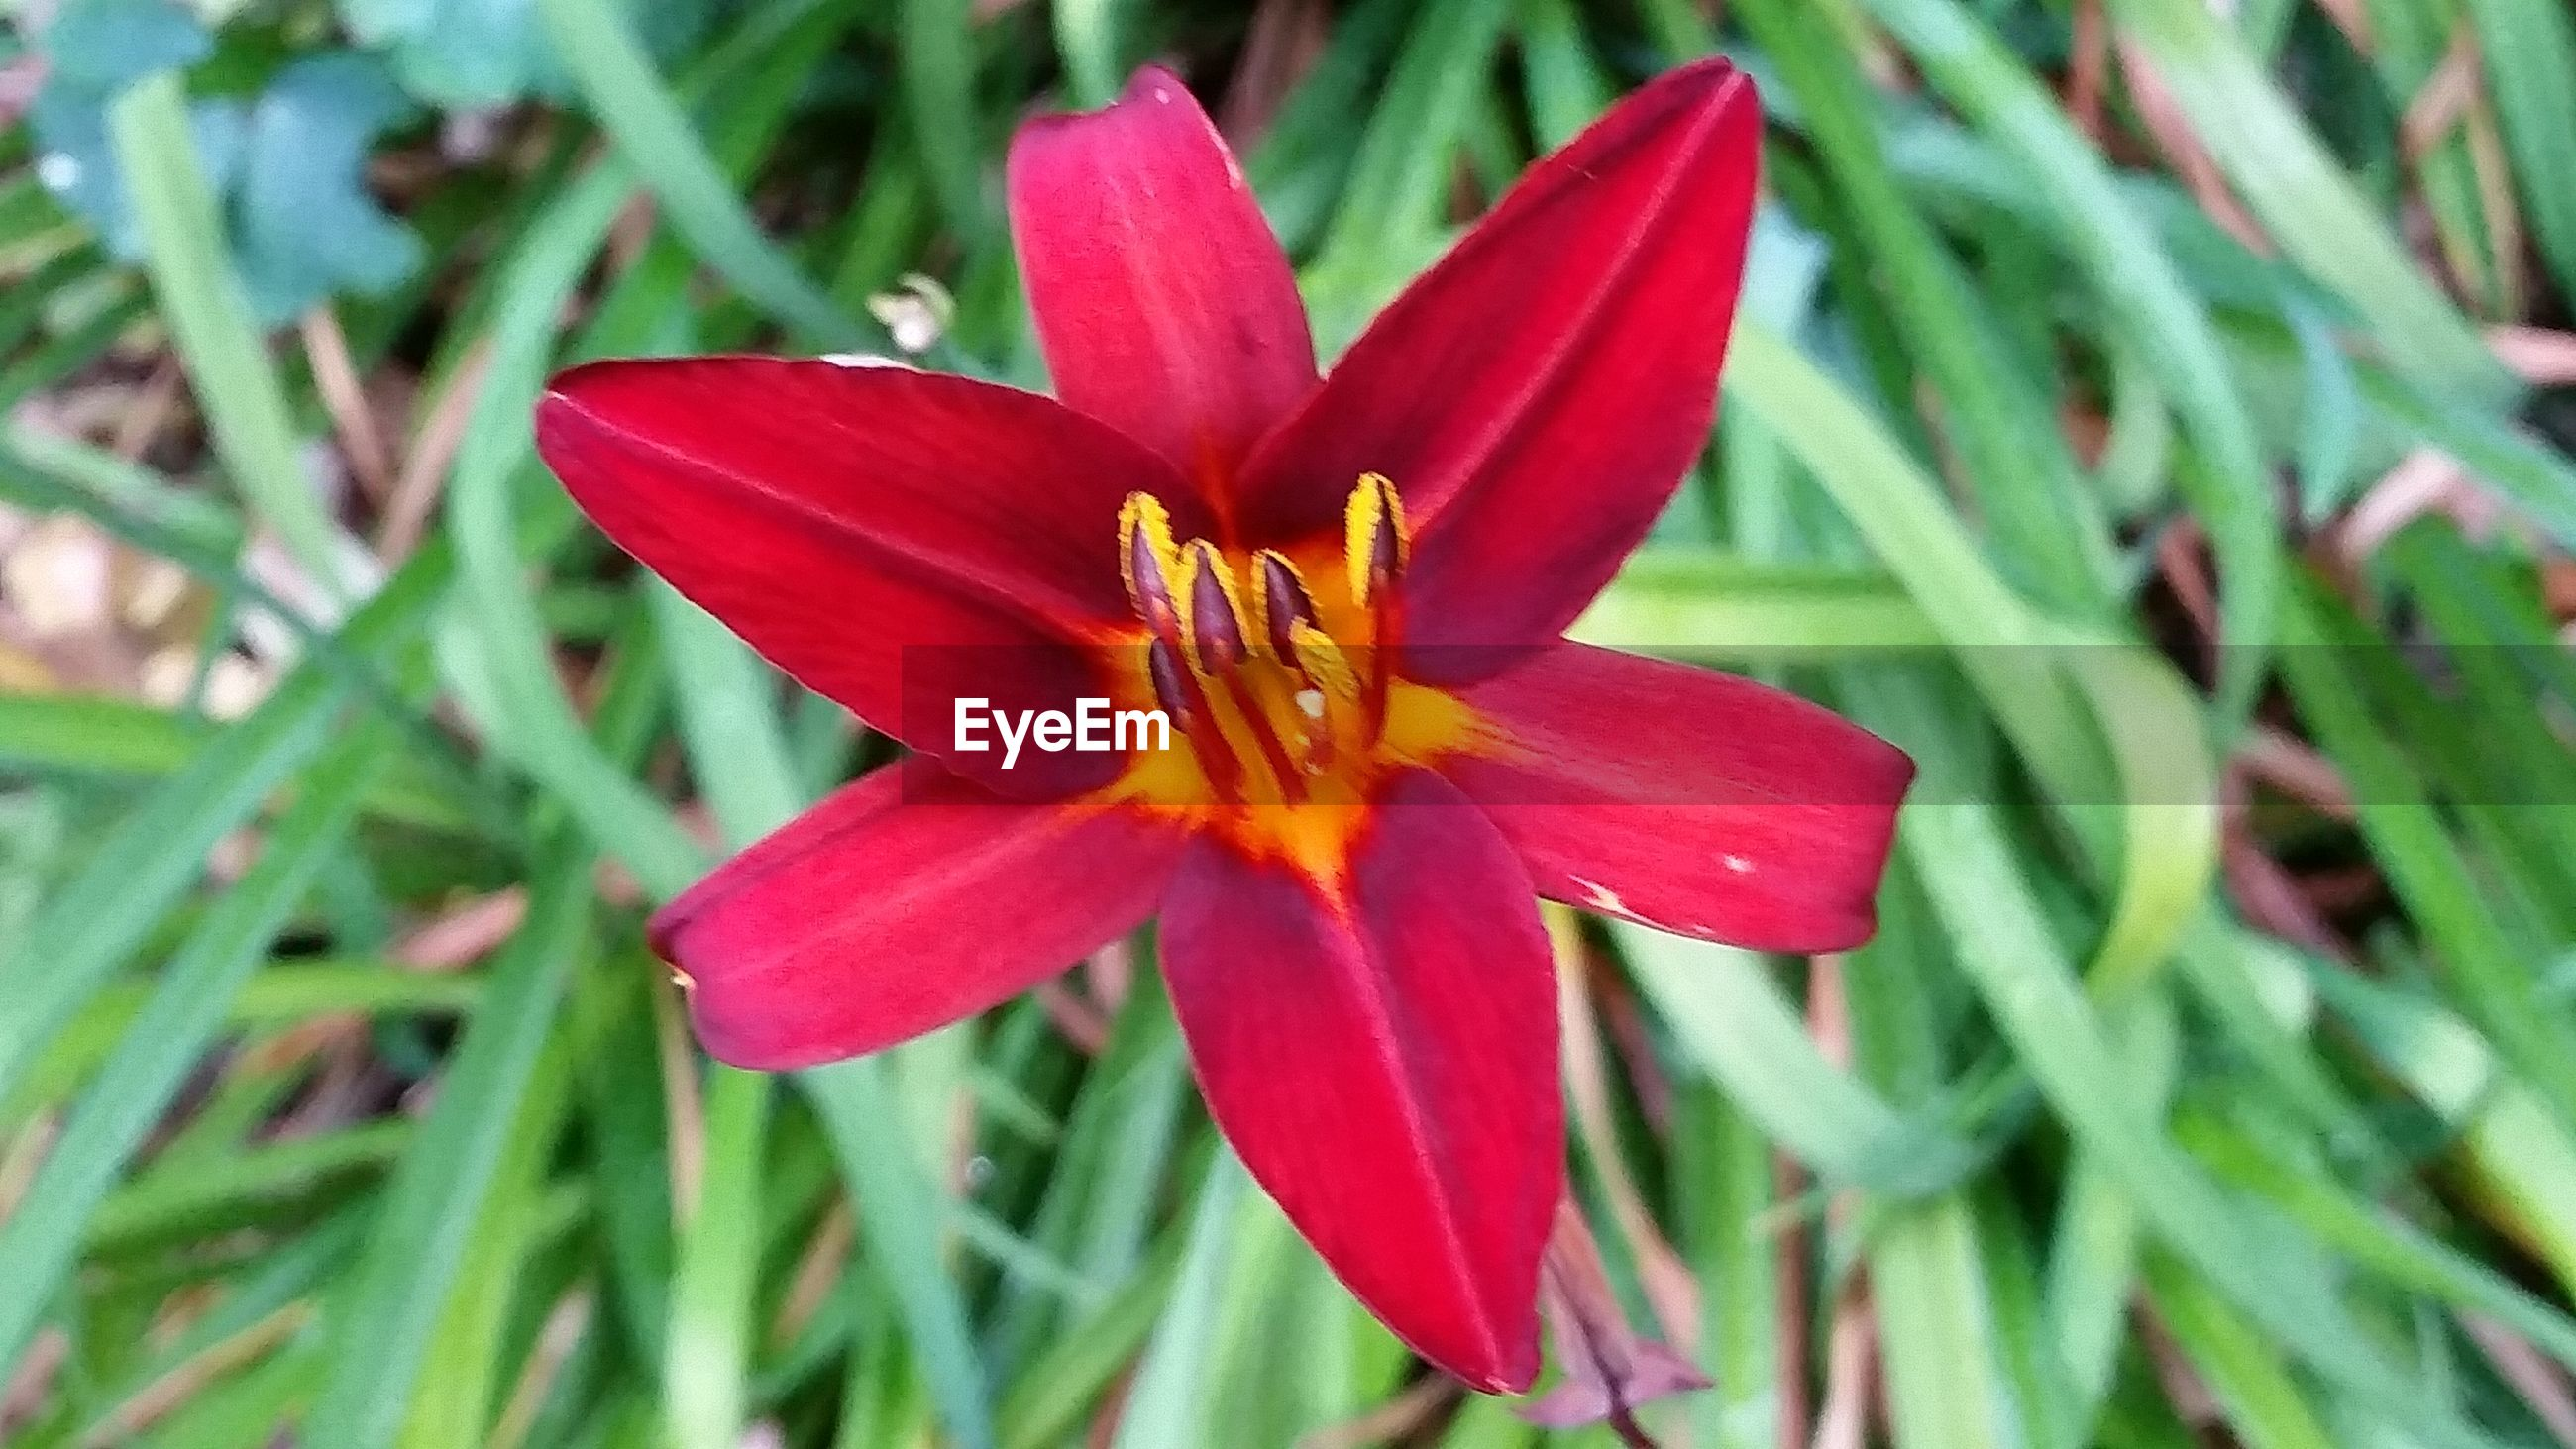 flower, petal, flower head, nature, growth, beauty in nature, fragility, freshness, red, no people, day, outdoors, plant, close-up, blooming, day lily